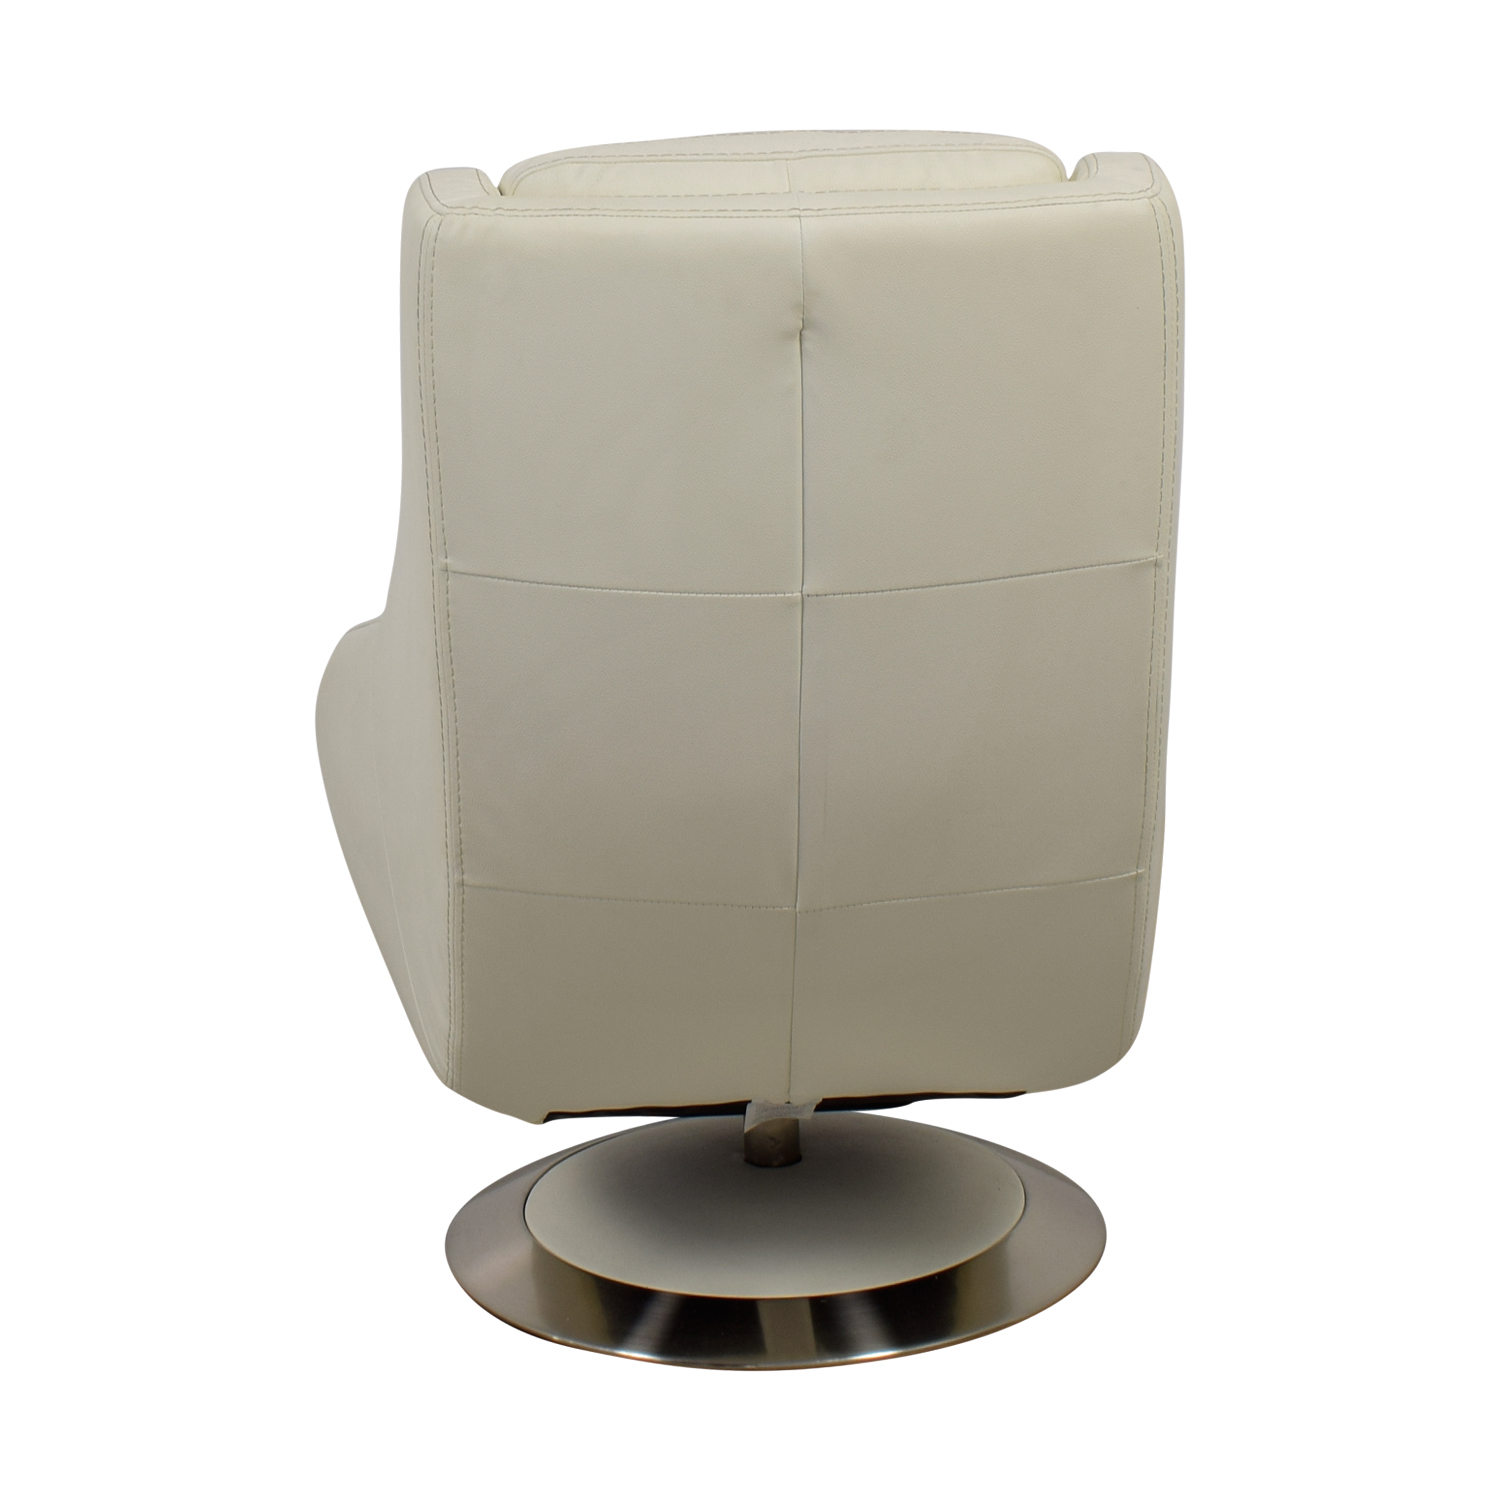 buy Design Within Reach White Leather Swivel Chair Design Within Reach